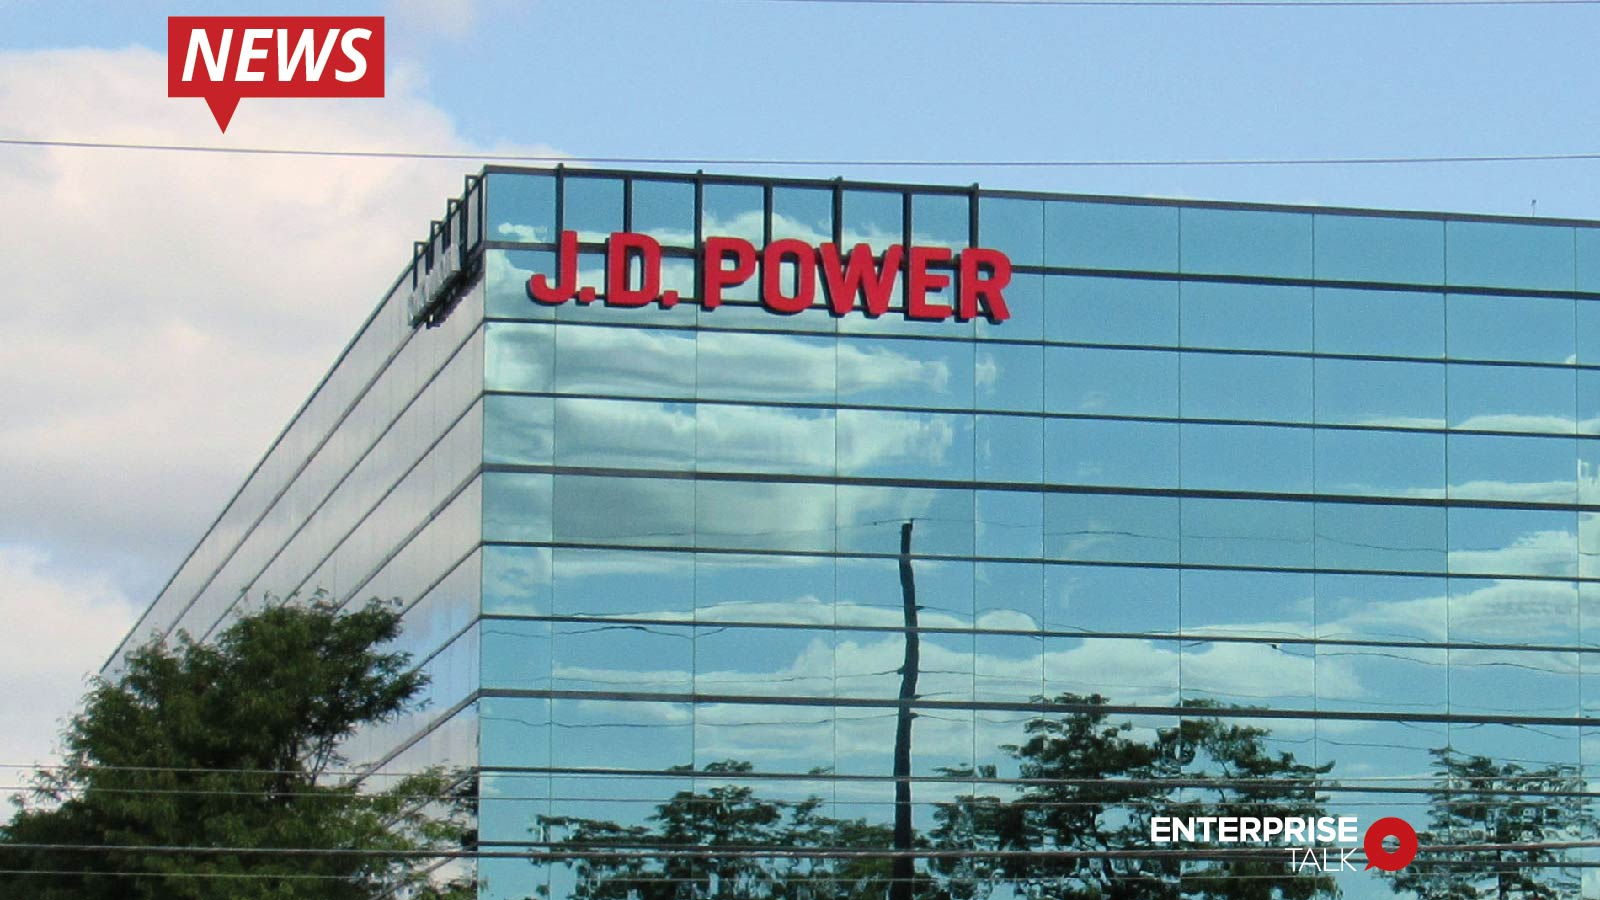 J.D. Power Launches Career Development Certification to Identify Companies with Superior Employee Development Initiatives